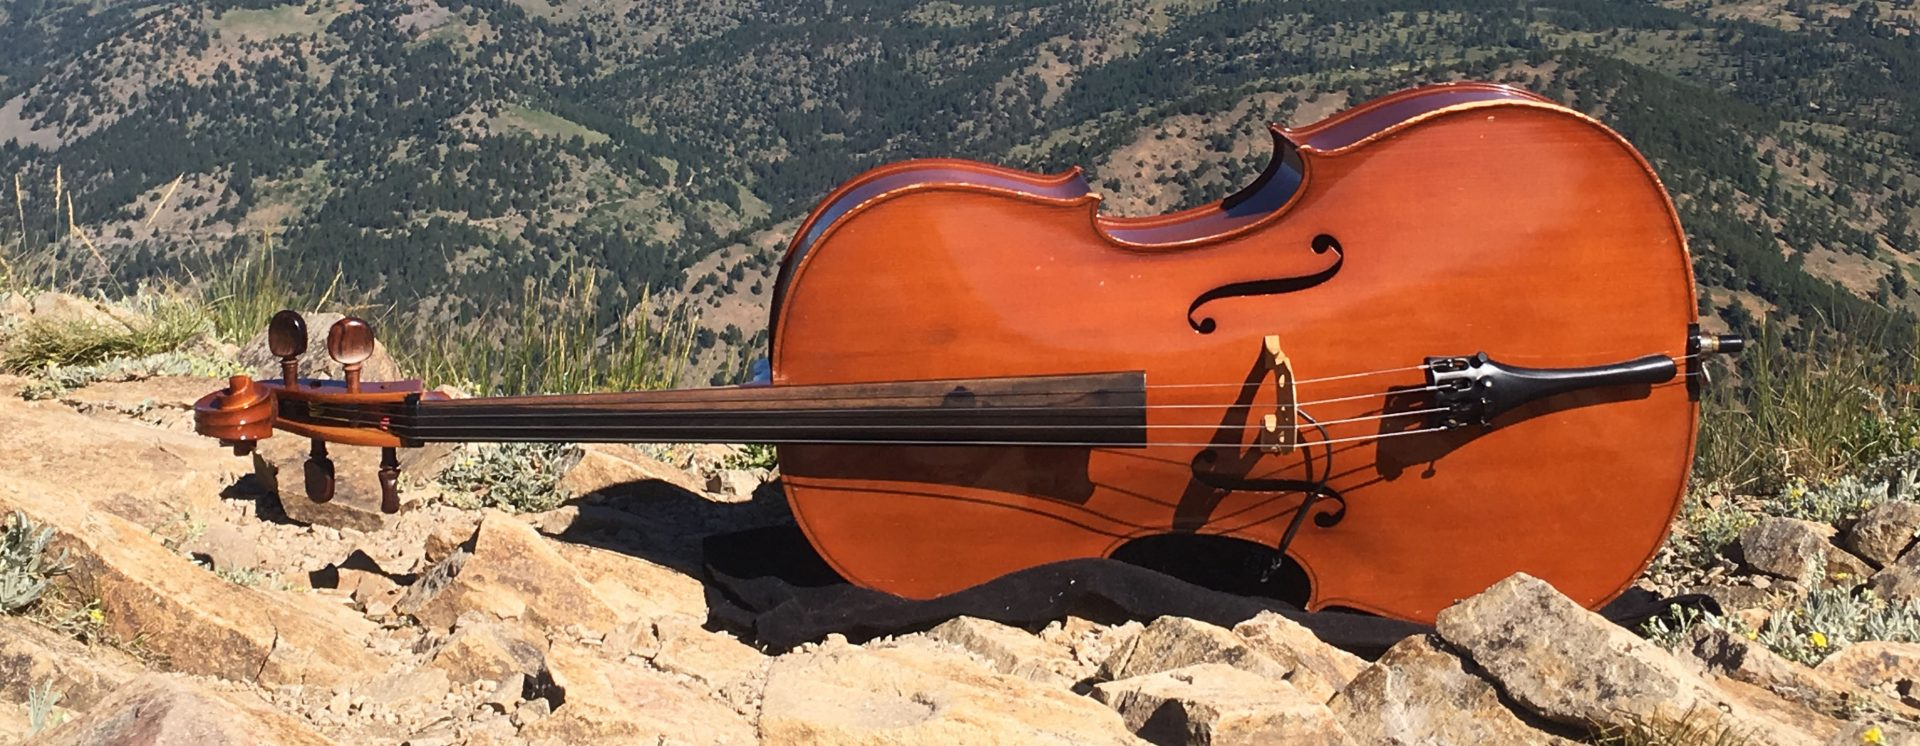 Colorado Cello